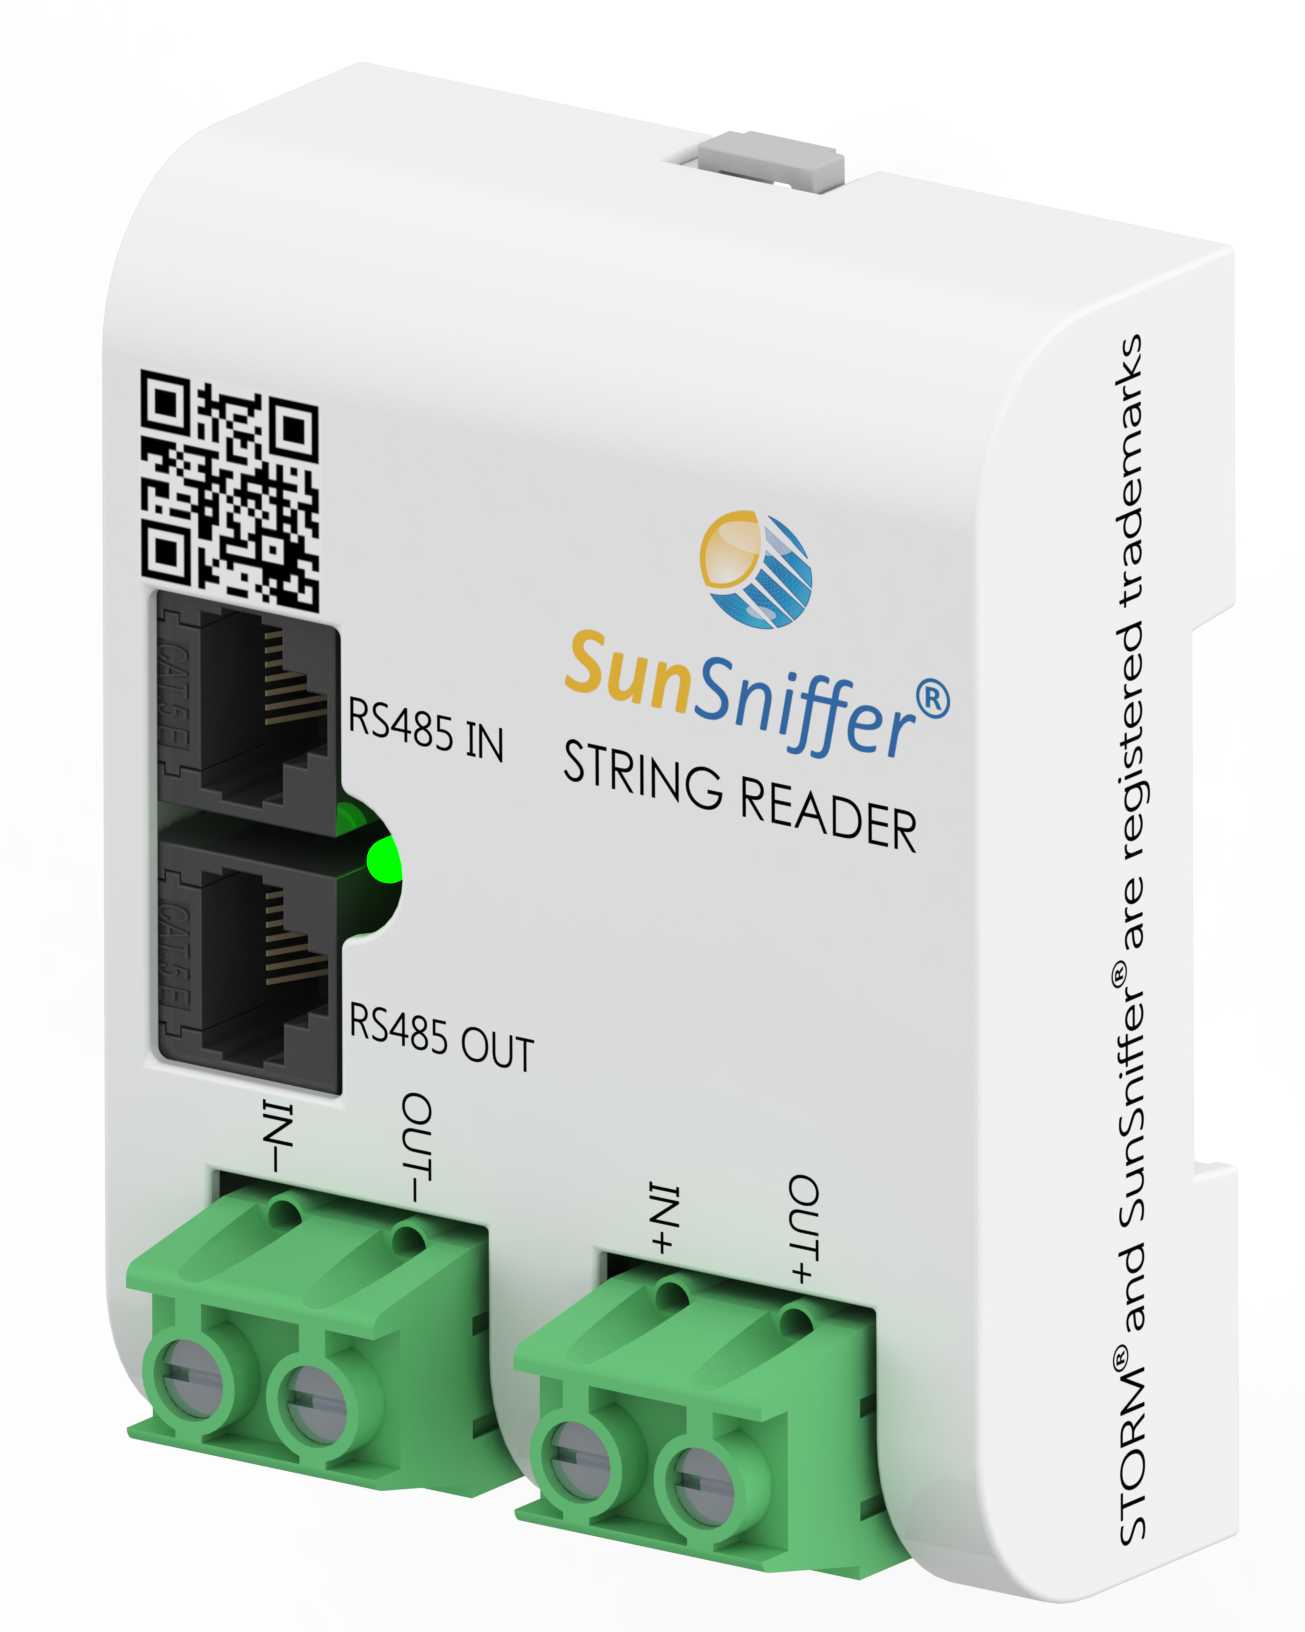 SunSniffer String Reader